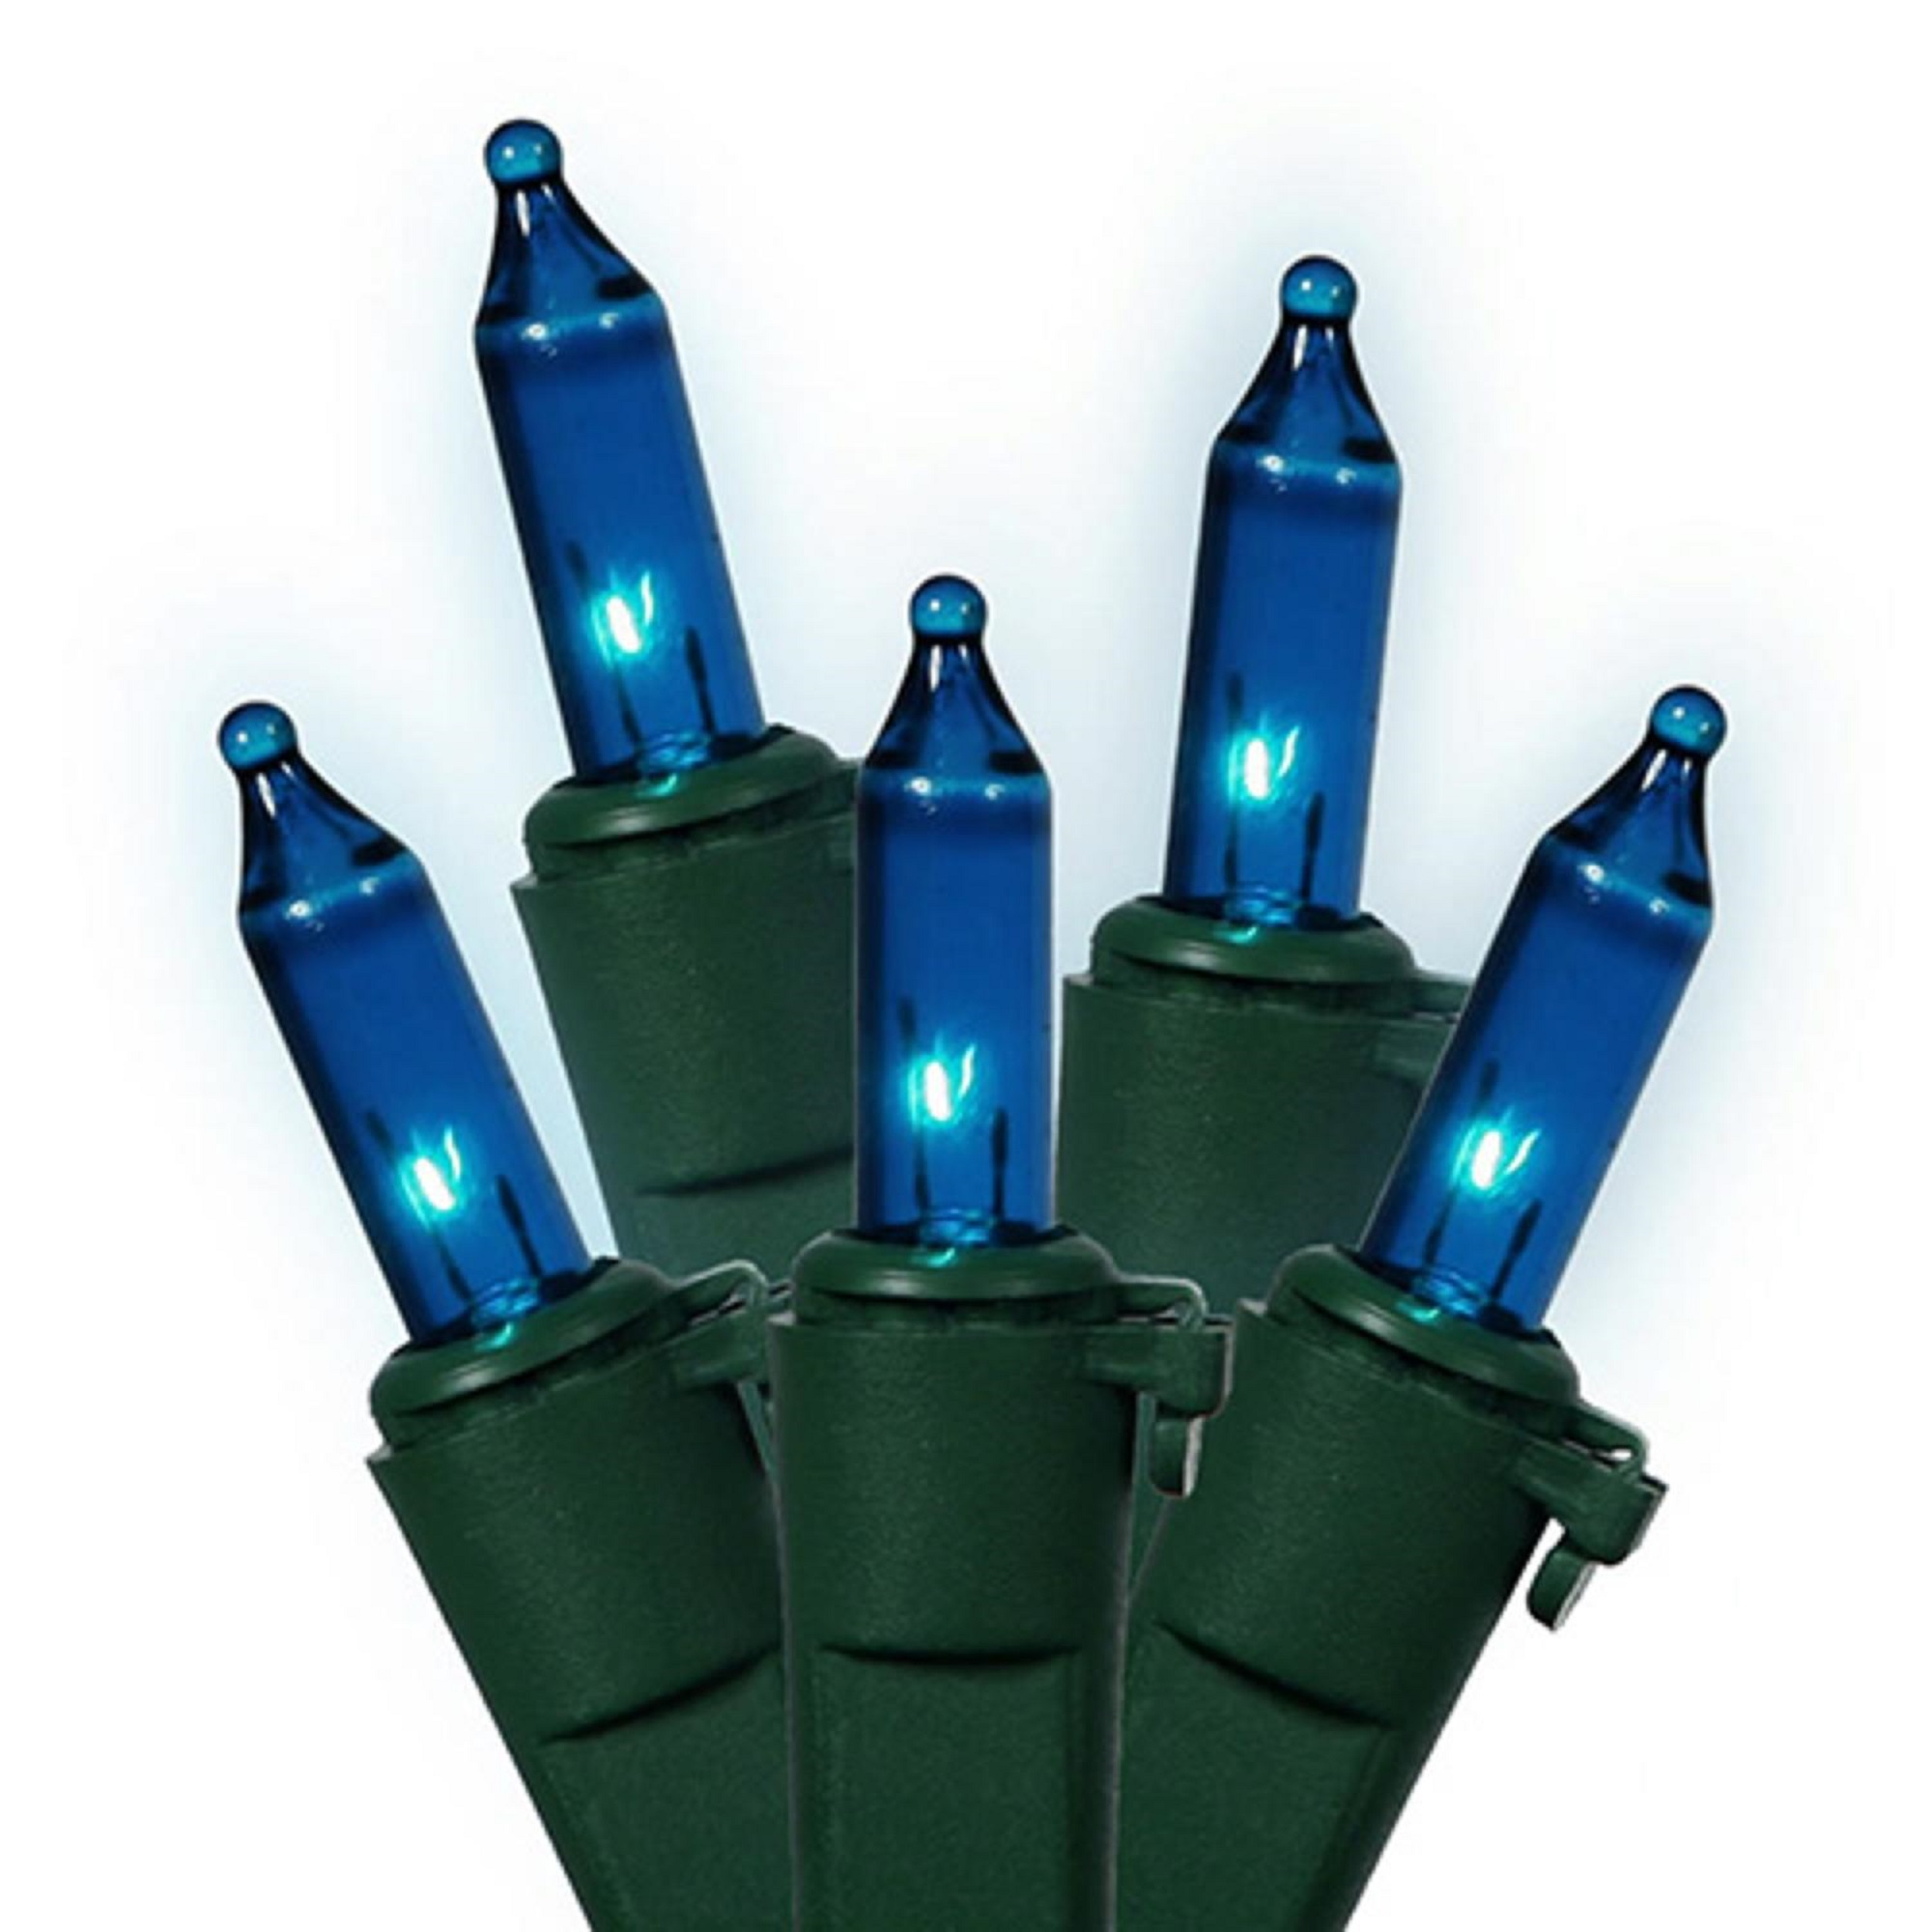 Mini Christmas Lights.Details About Vickerman Set Of 50 Blue Mini Indoor Outdoor Christmas Lights 120v Green Wire